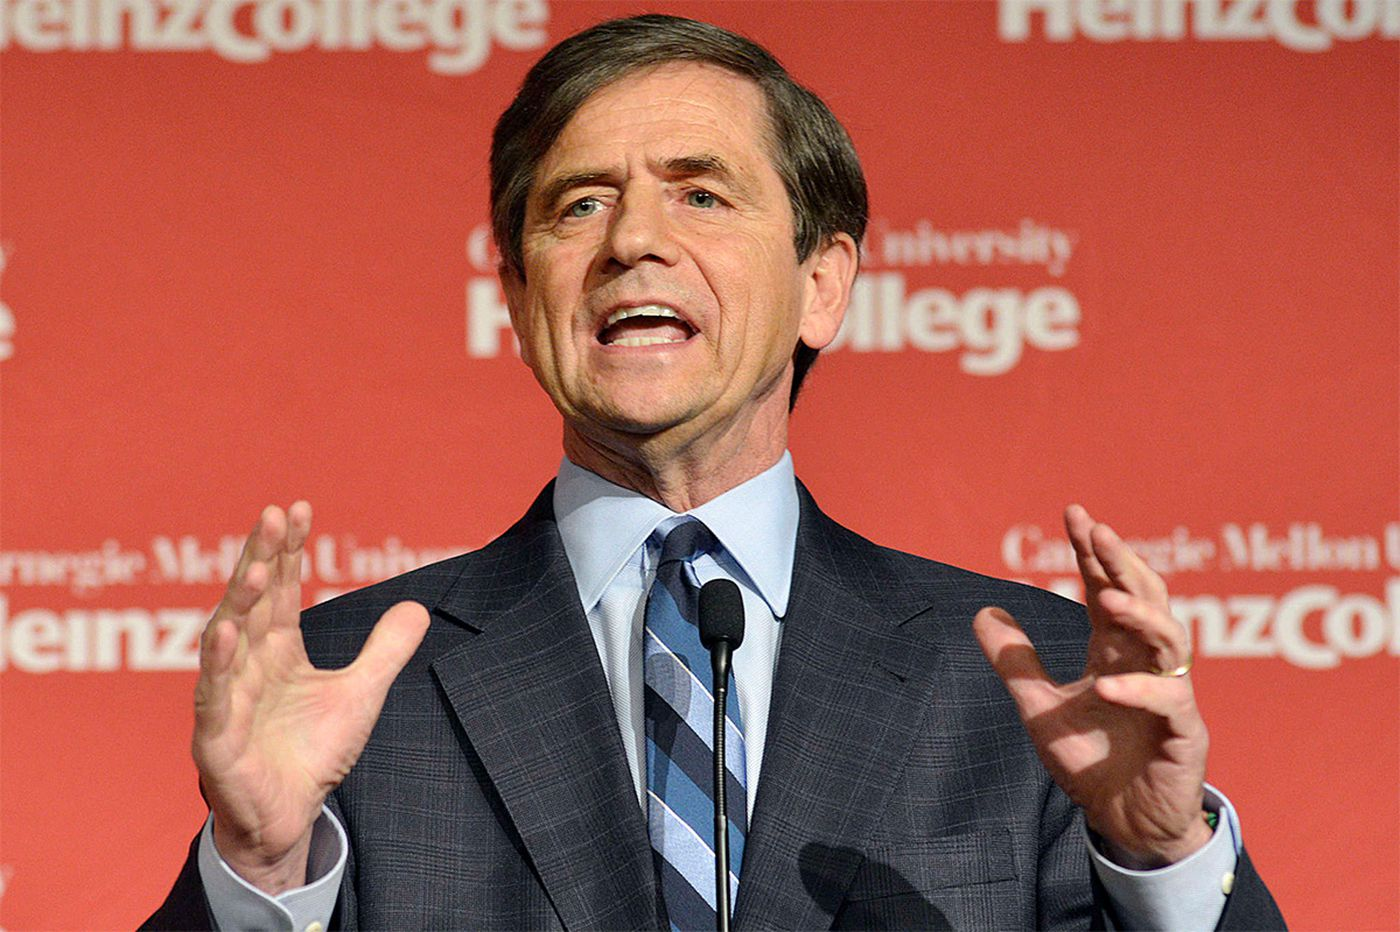 Inquirer editorial: Sestak is the better choice for Democrats